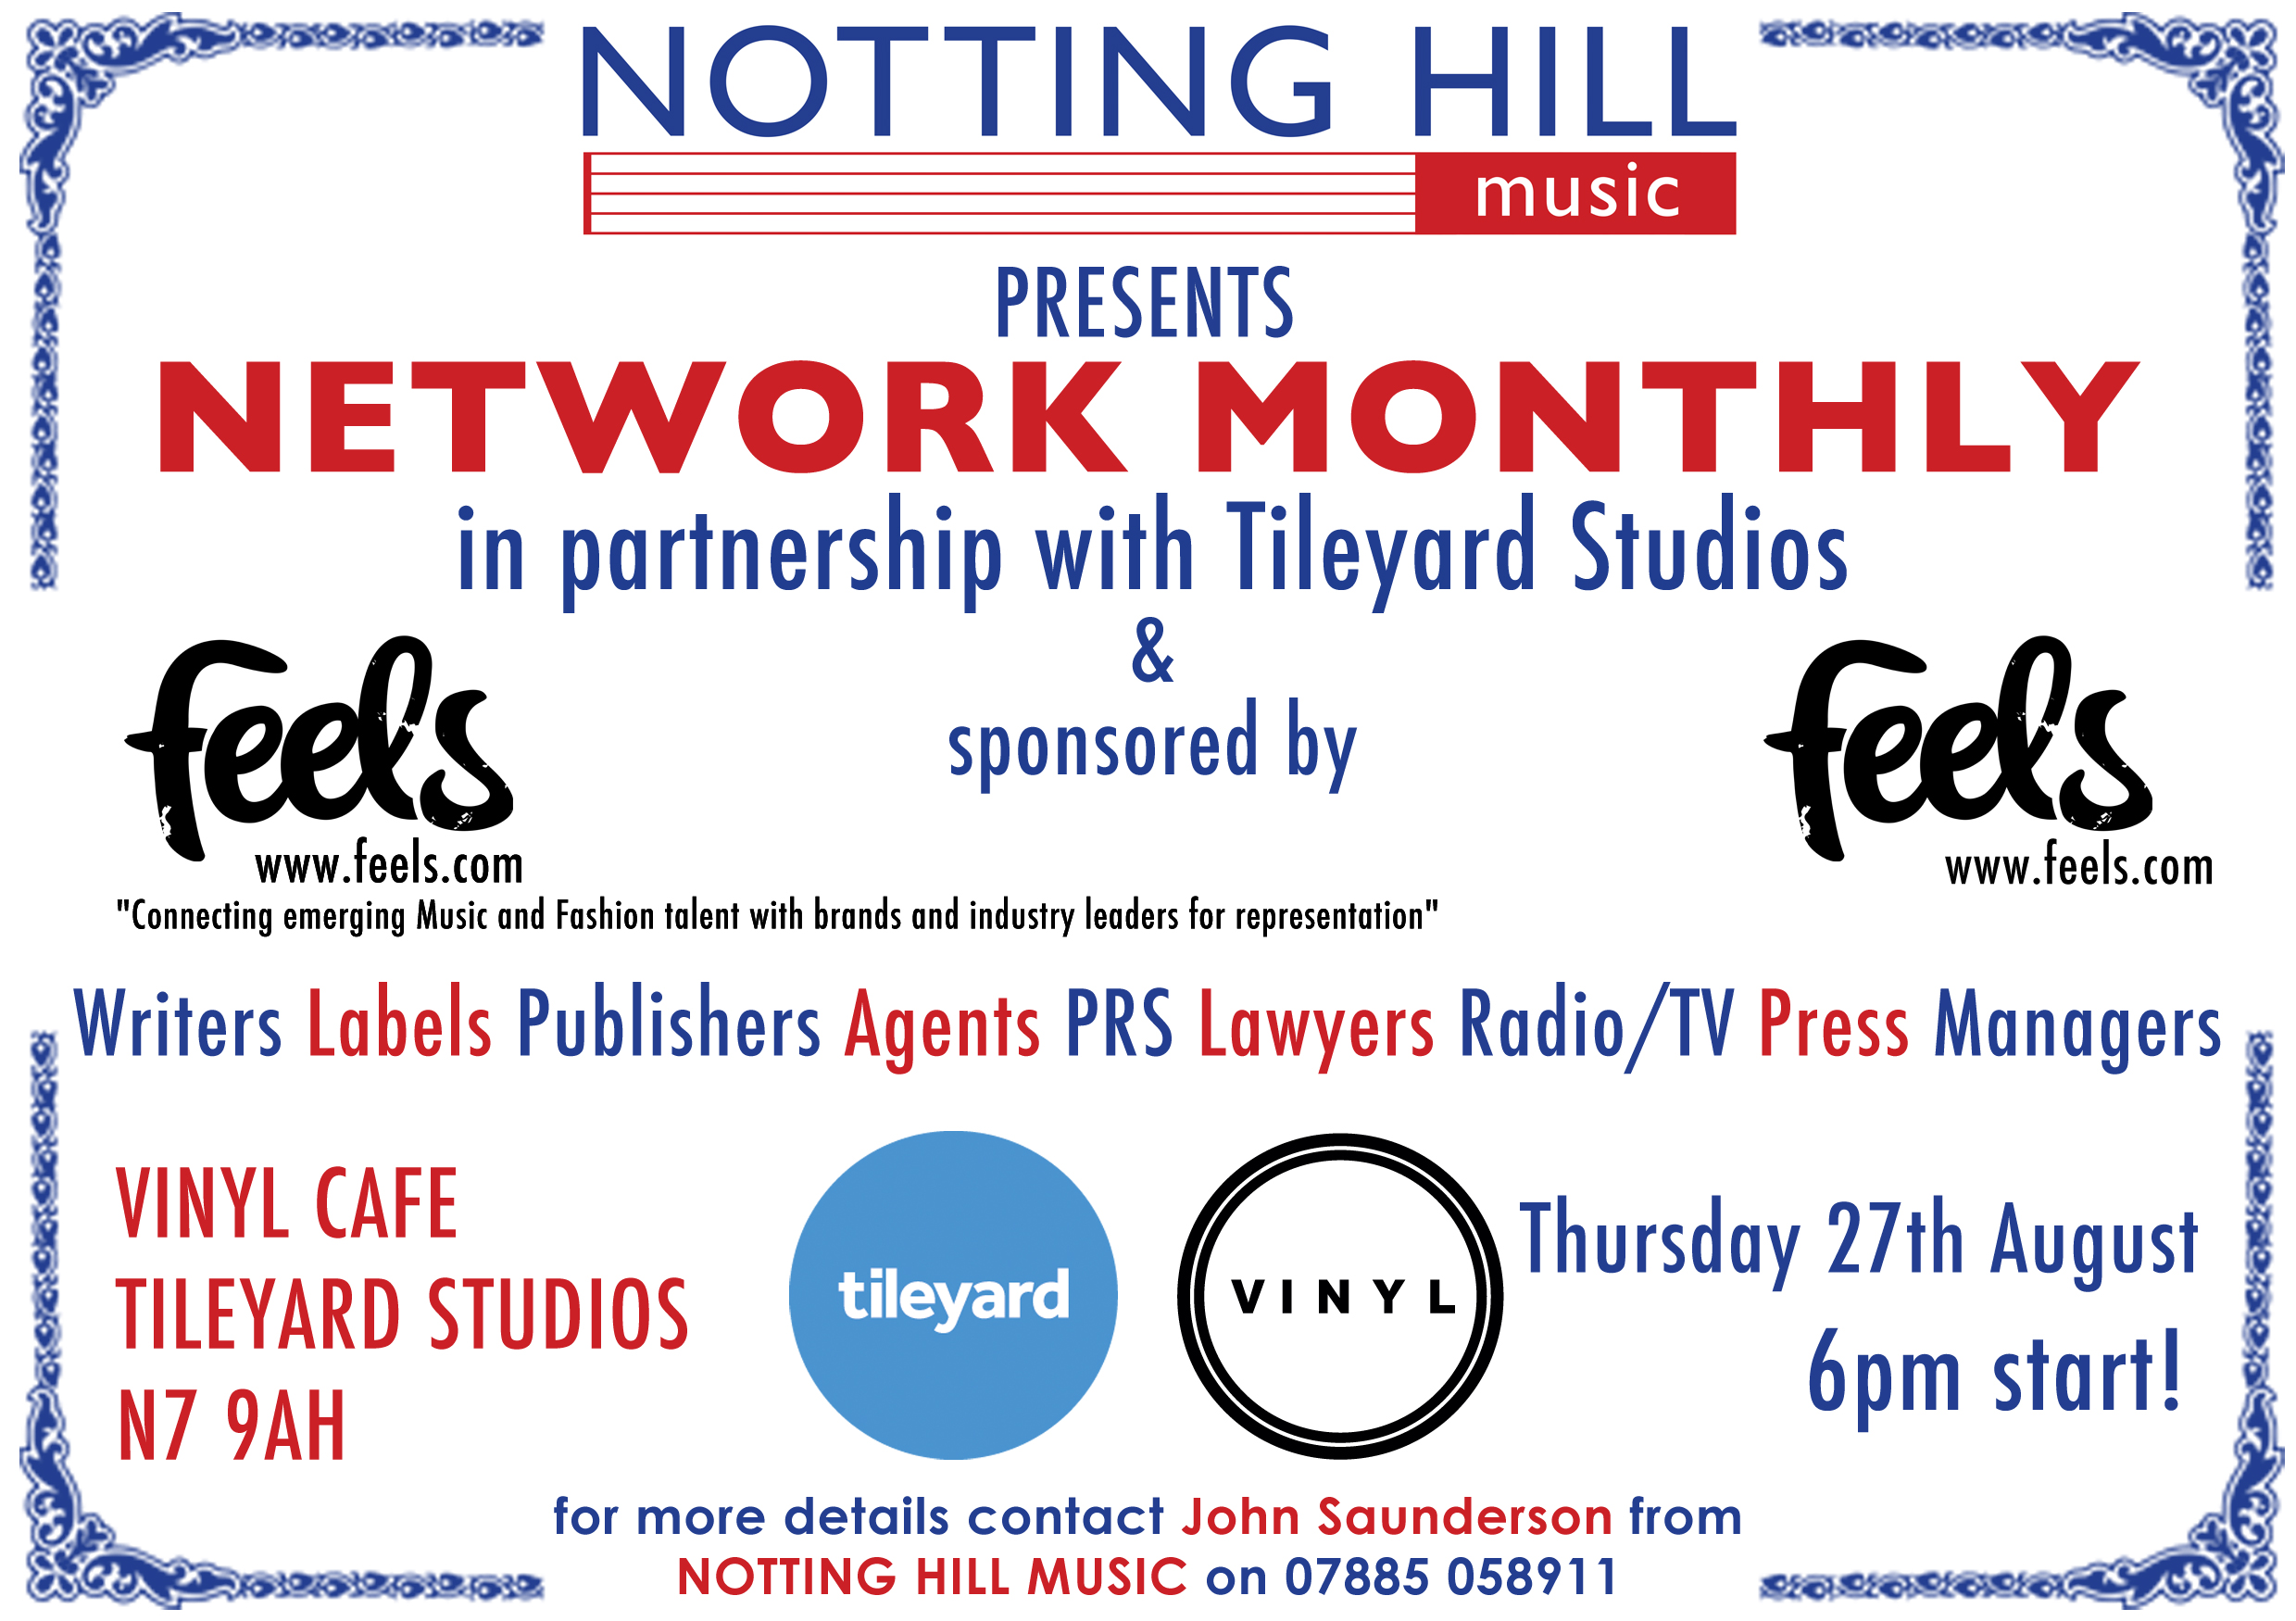 Next Networking Night set for 27th August!